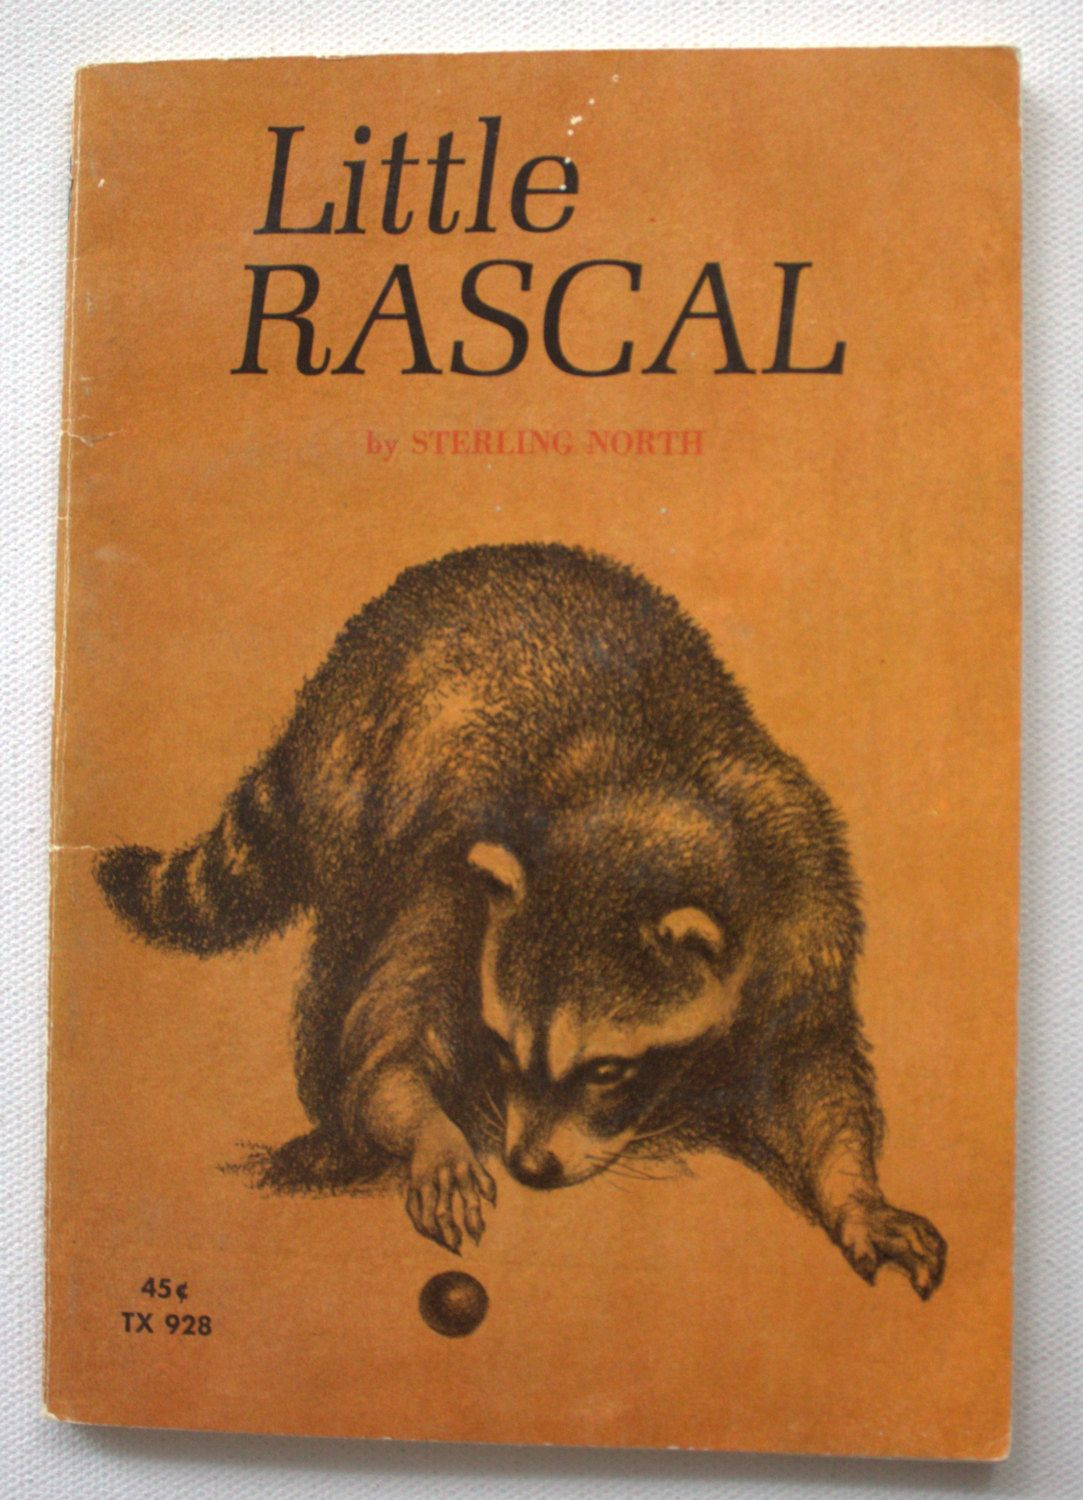 Vintage Childrens' Book - Little Rascal (1969) by Sterling North - Animal  Stories - Chapter Books - Raccoon by StrikingThirteen on Etsy